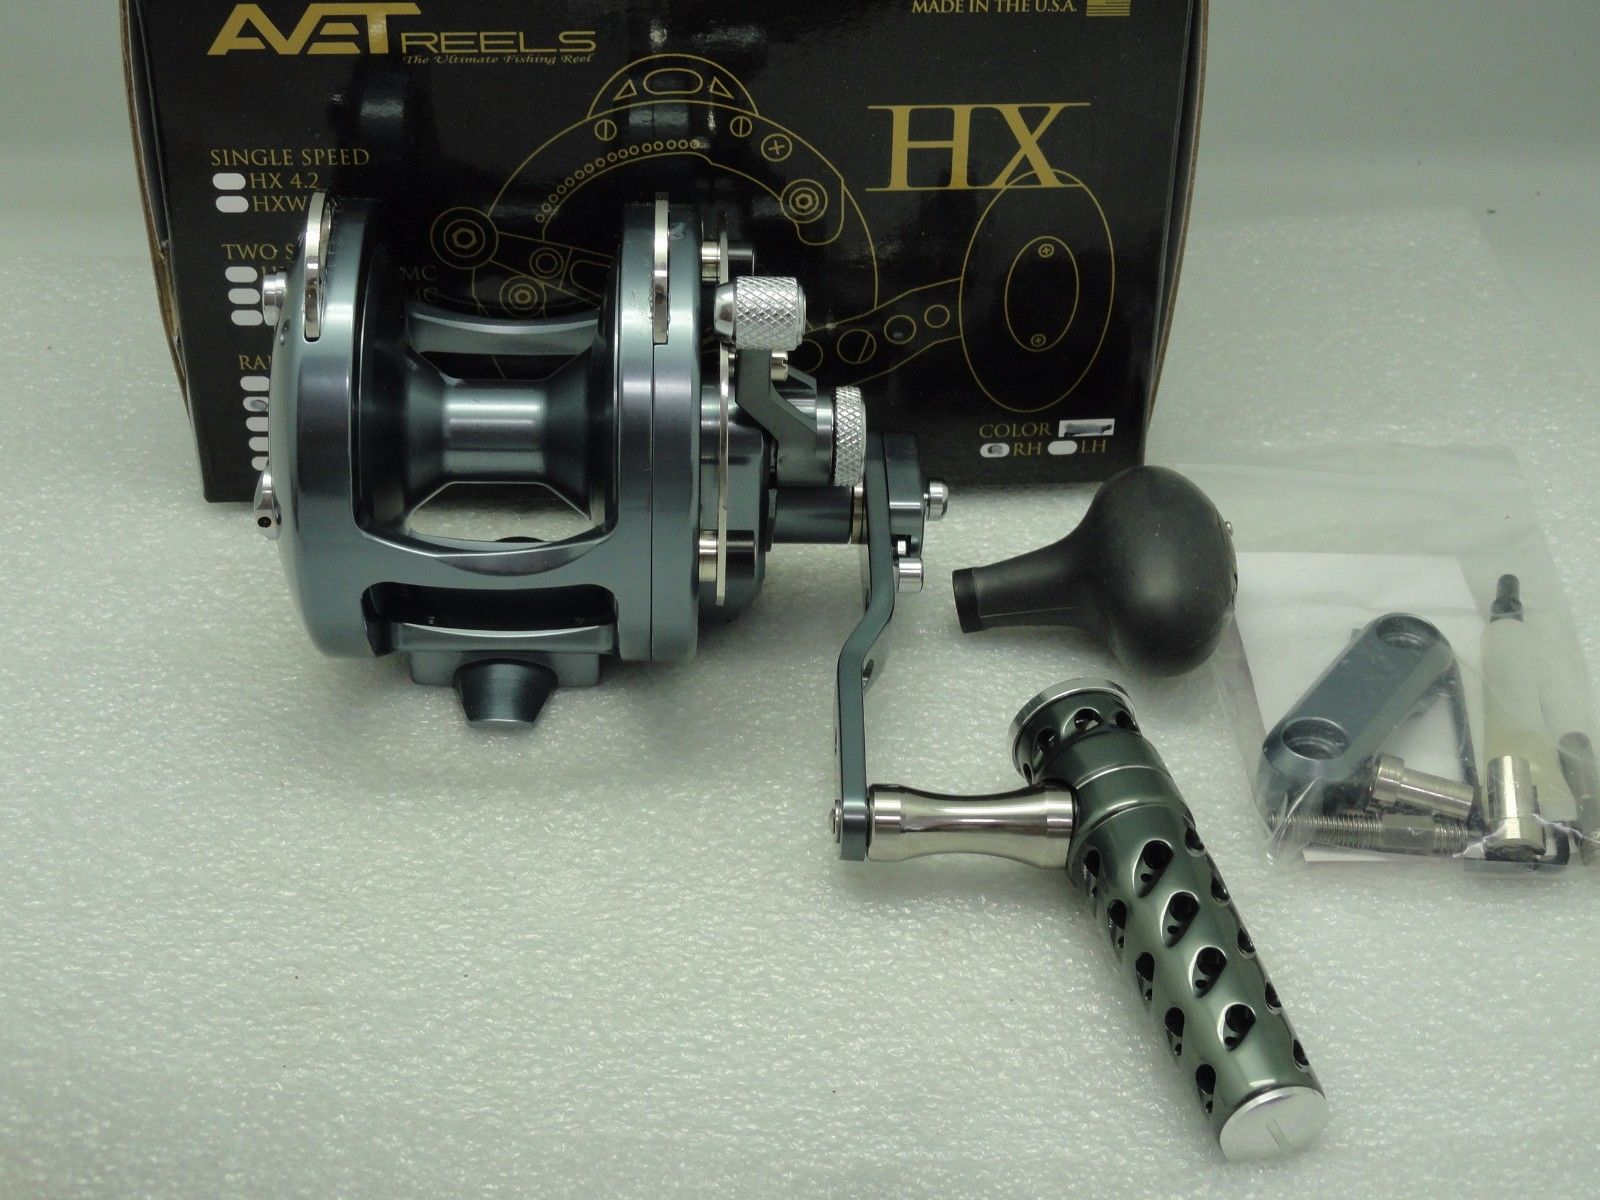 T Bar T092A Package For Avet Reels